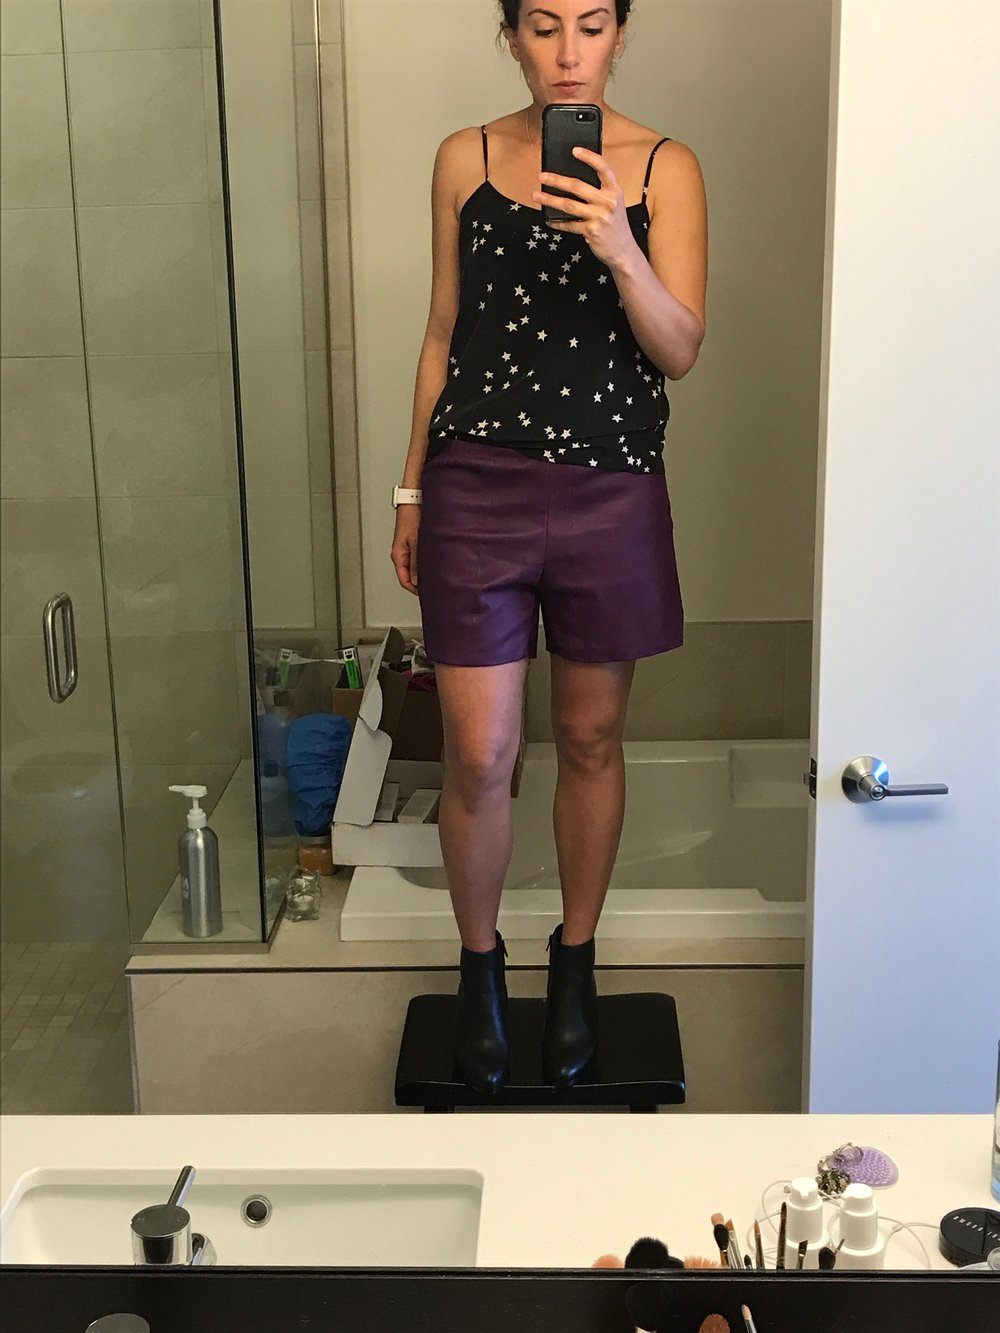 We decided she'd get lots of use out of a pair of leather shorts. So, the tailor transformed the skirt into this pair of shorts.